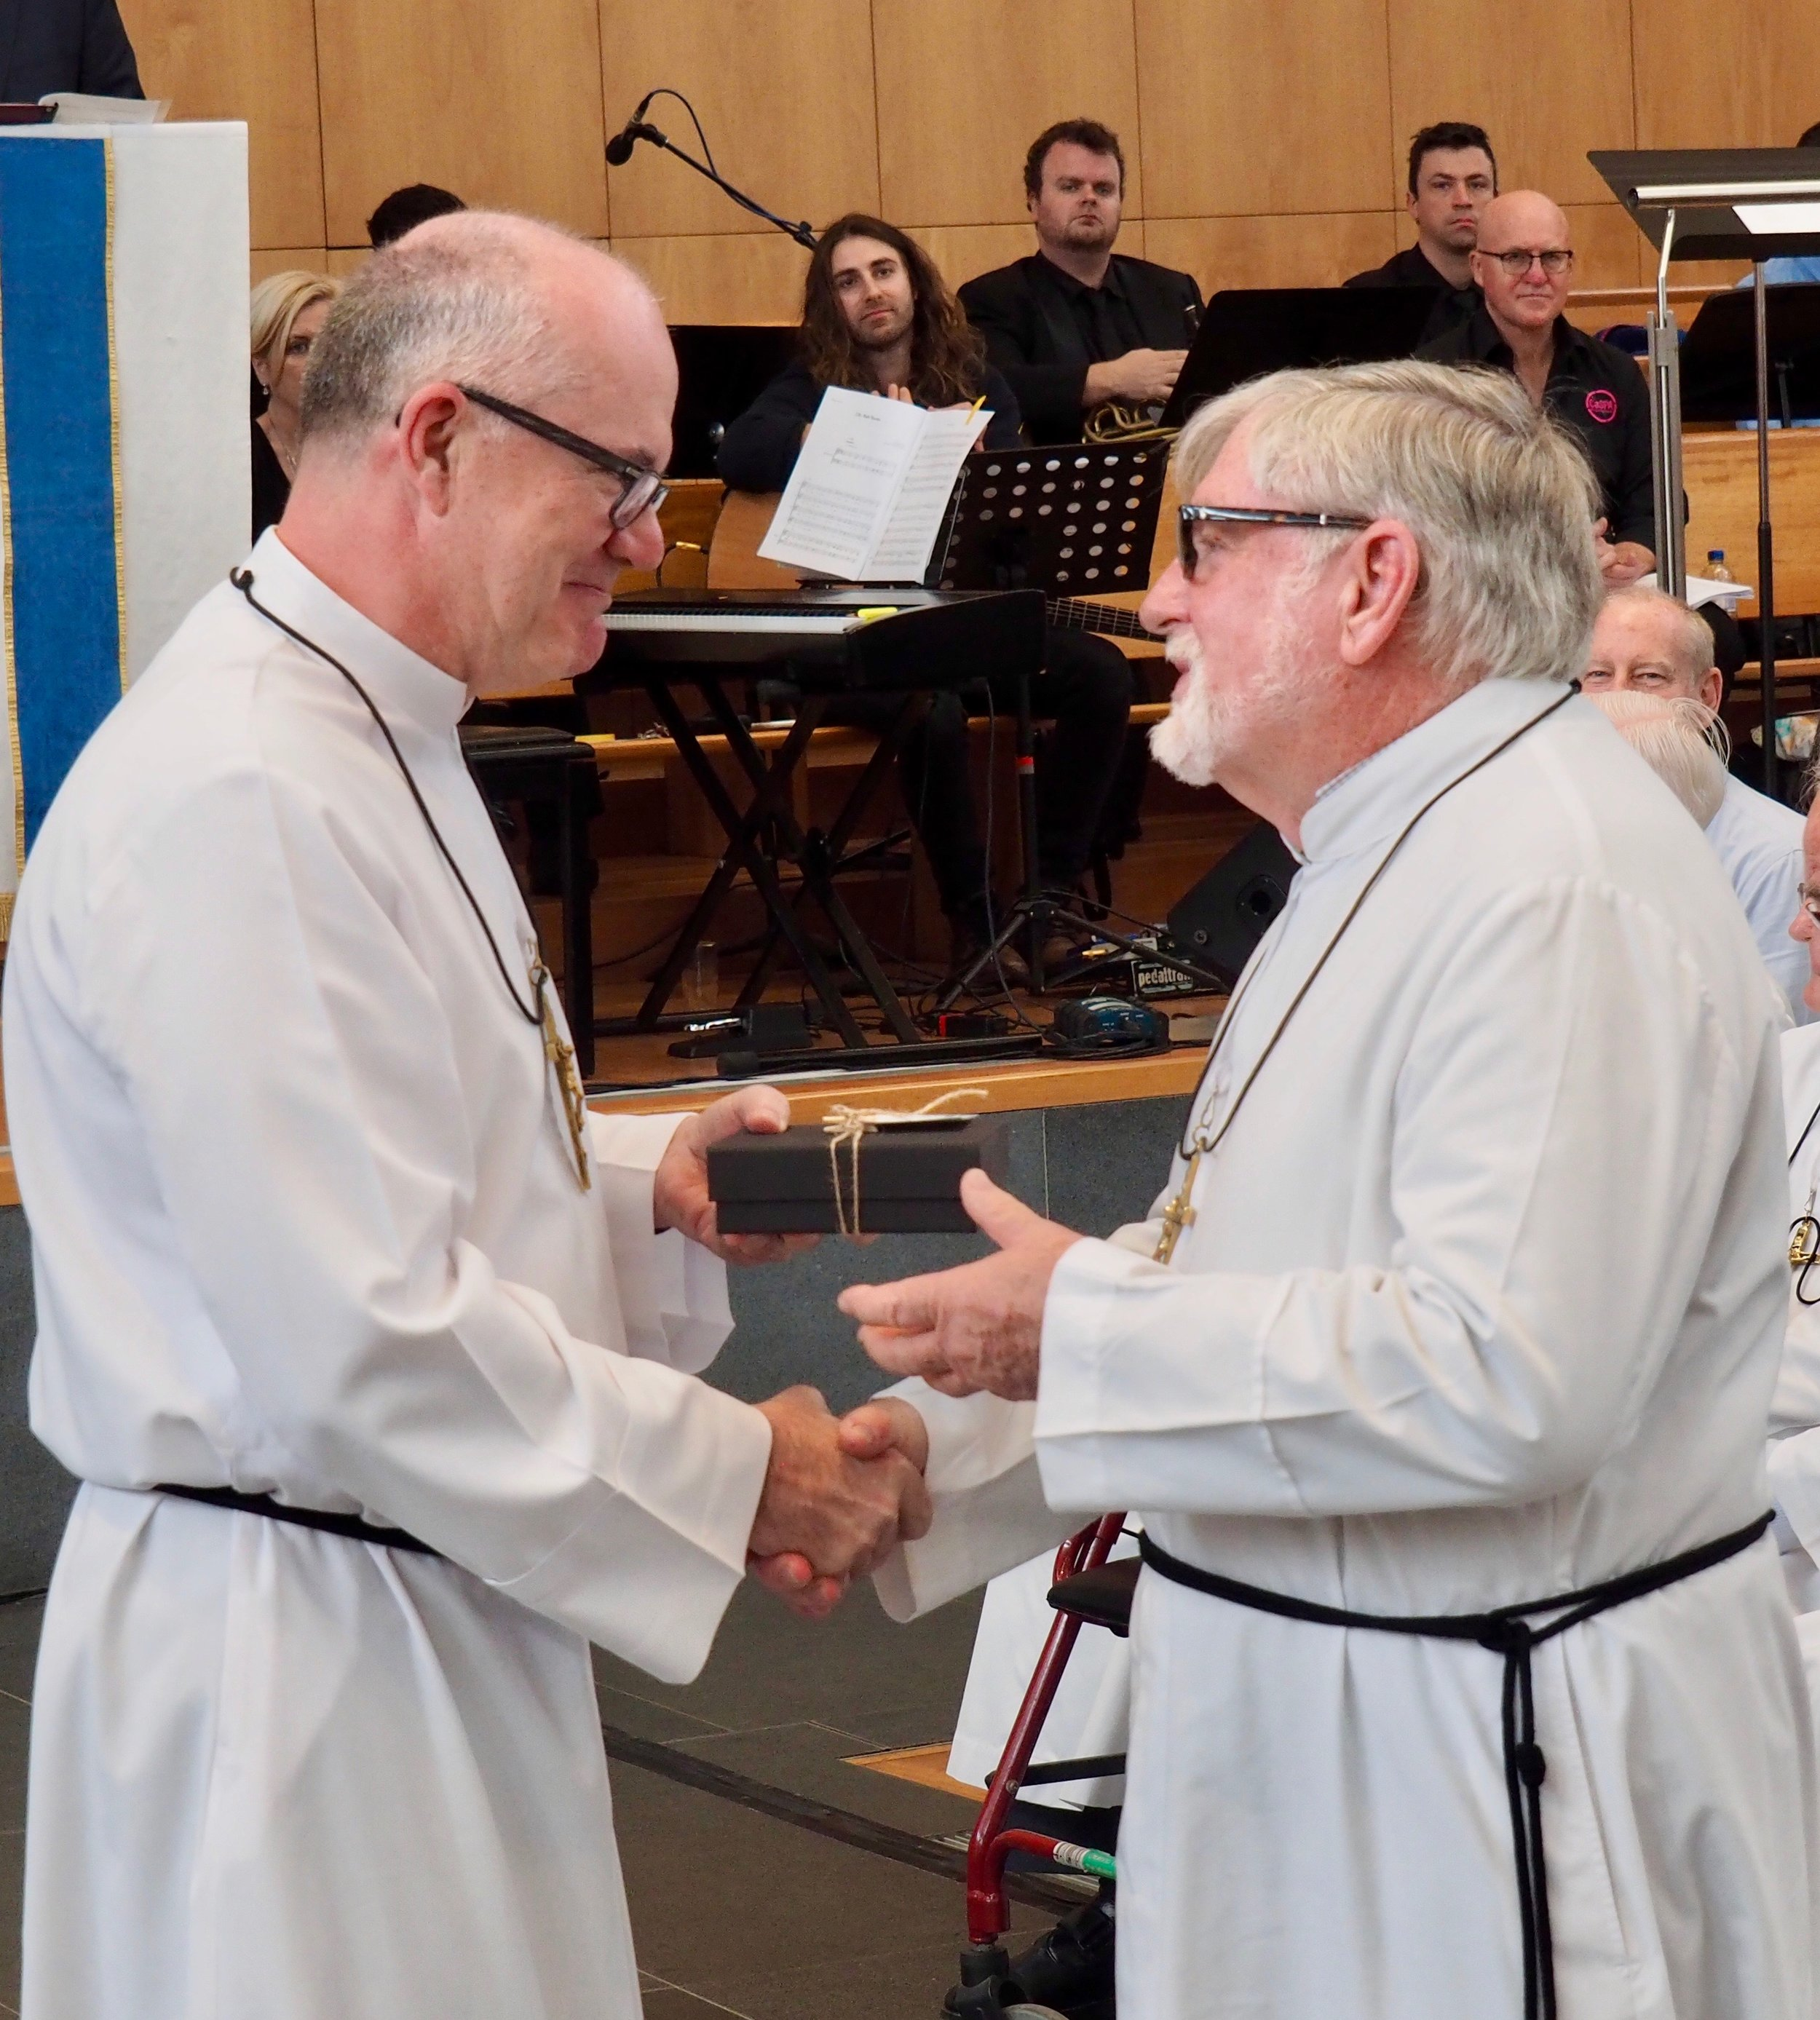 Bicentenary Mass Sydney 12 Aug 2017 Photos by Paul Harris 00081.jpg